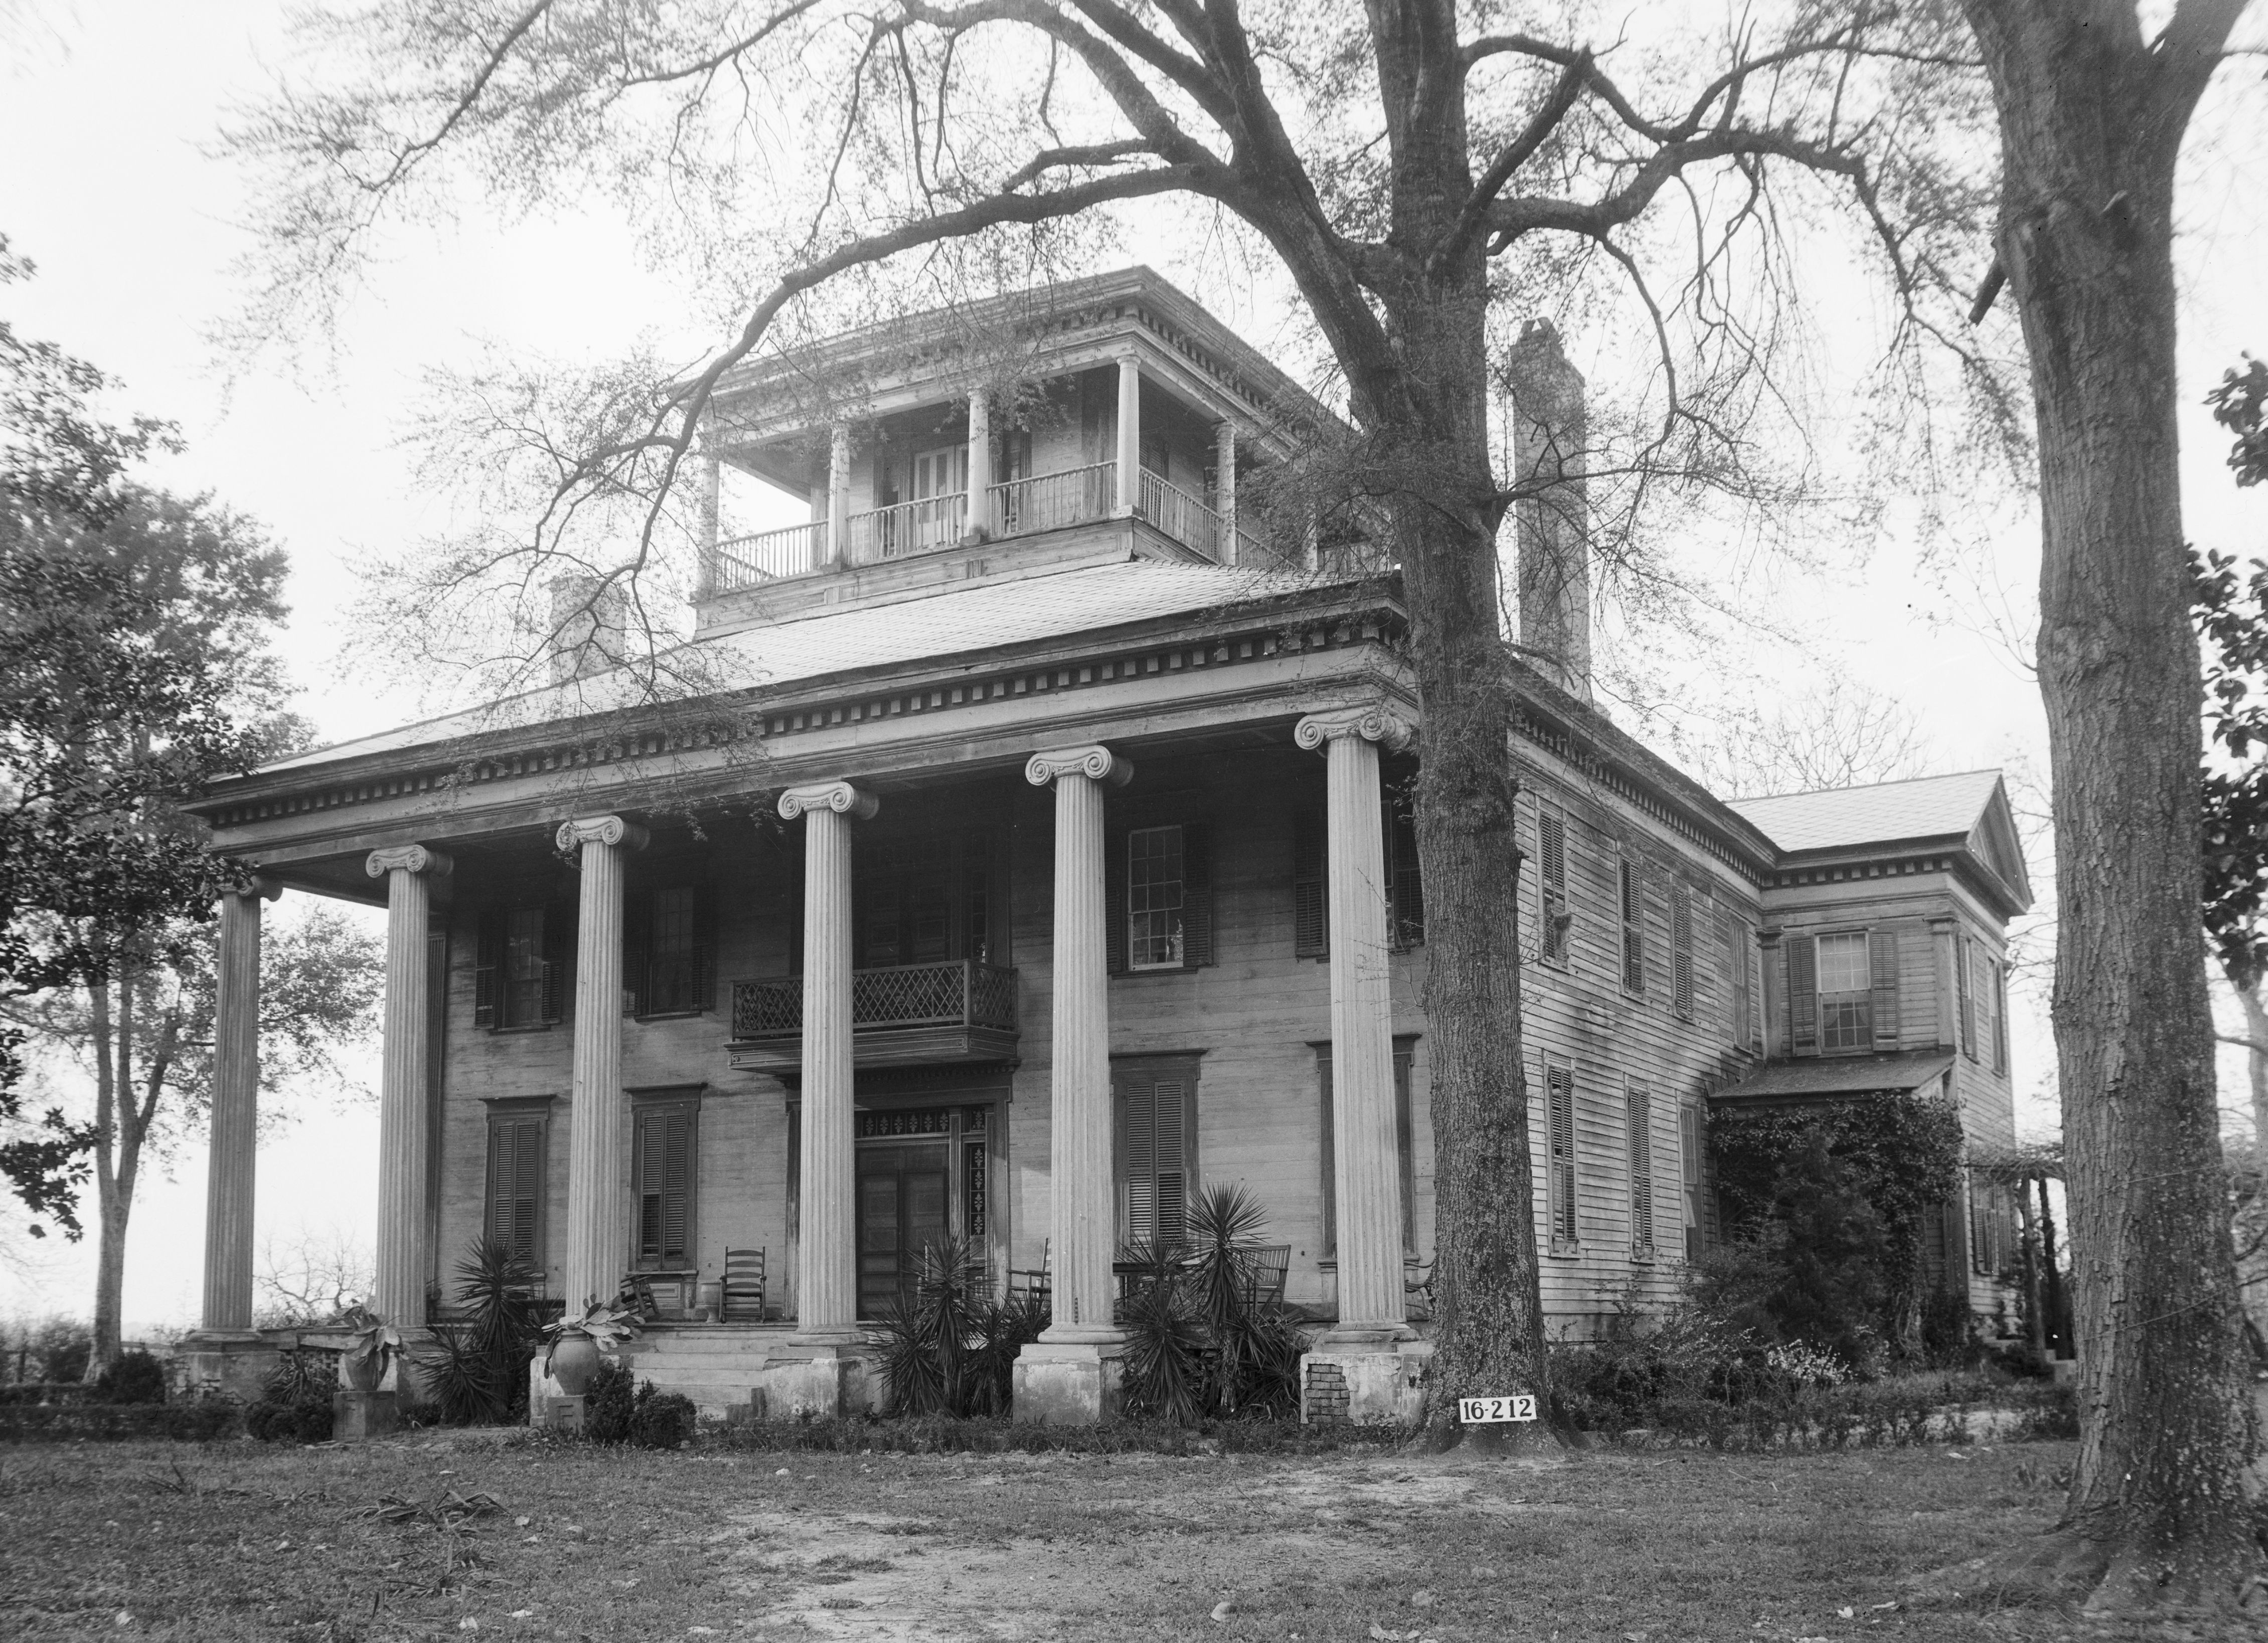 The architecture of the old south the literate pen for Plantation home builders